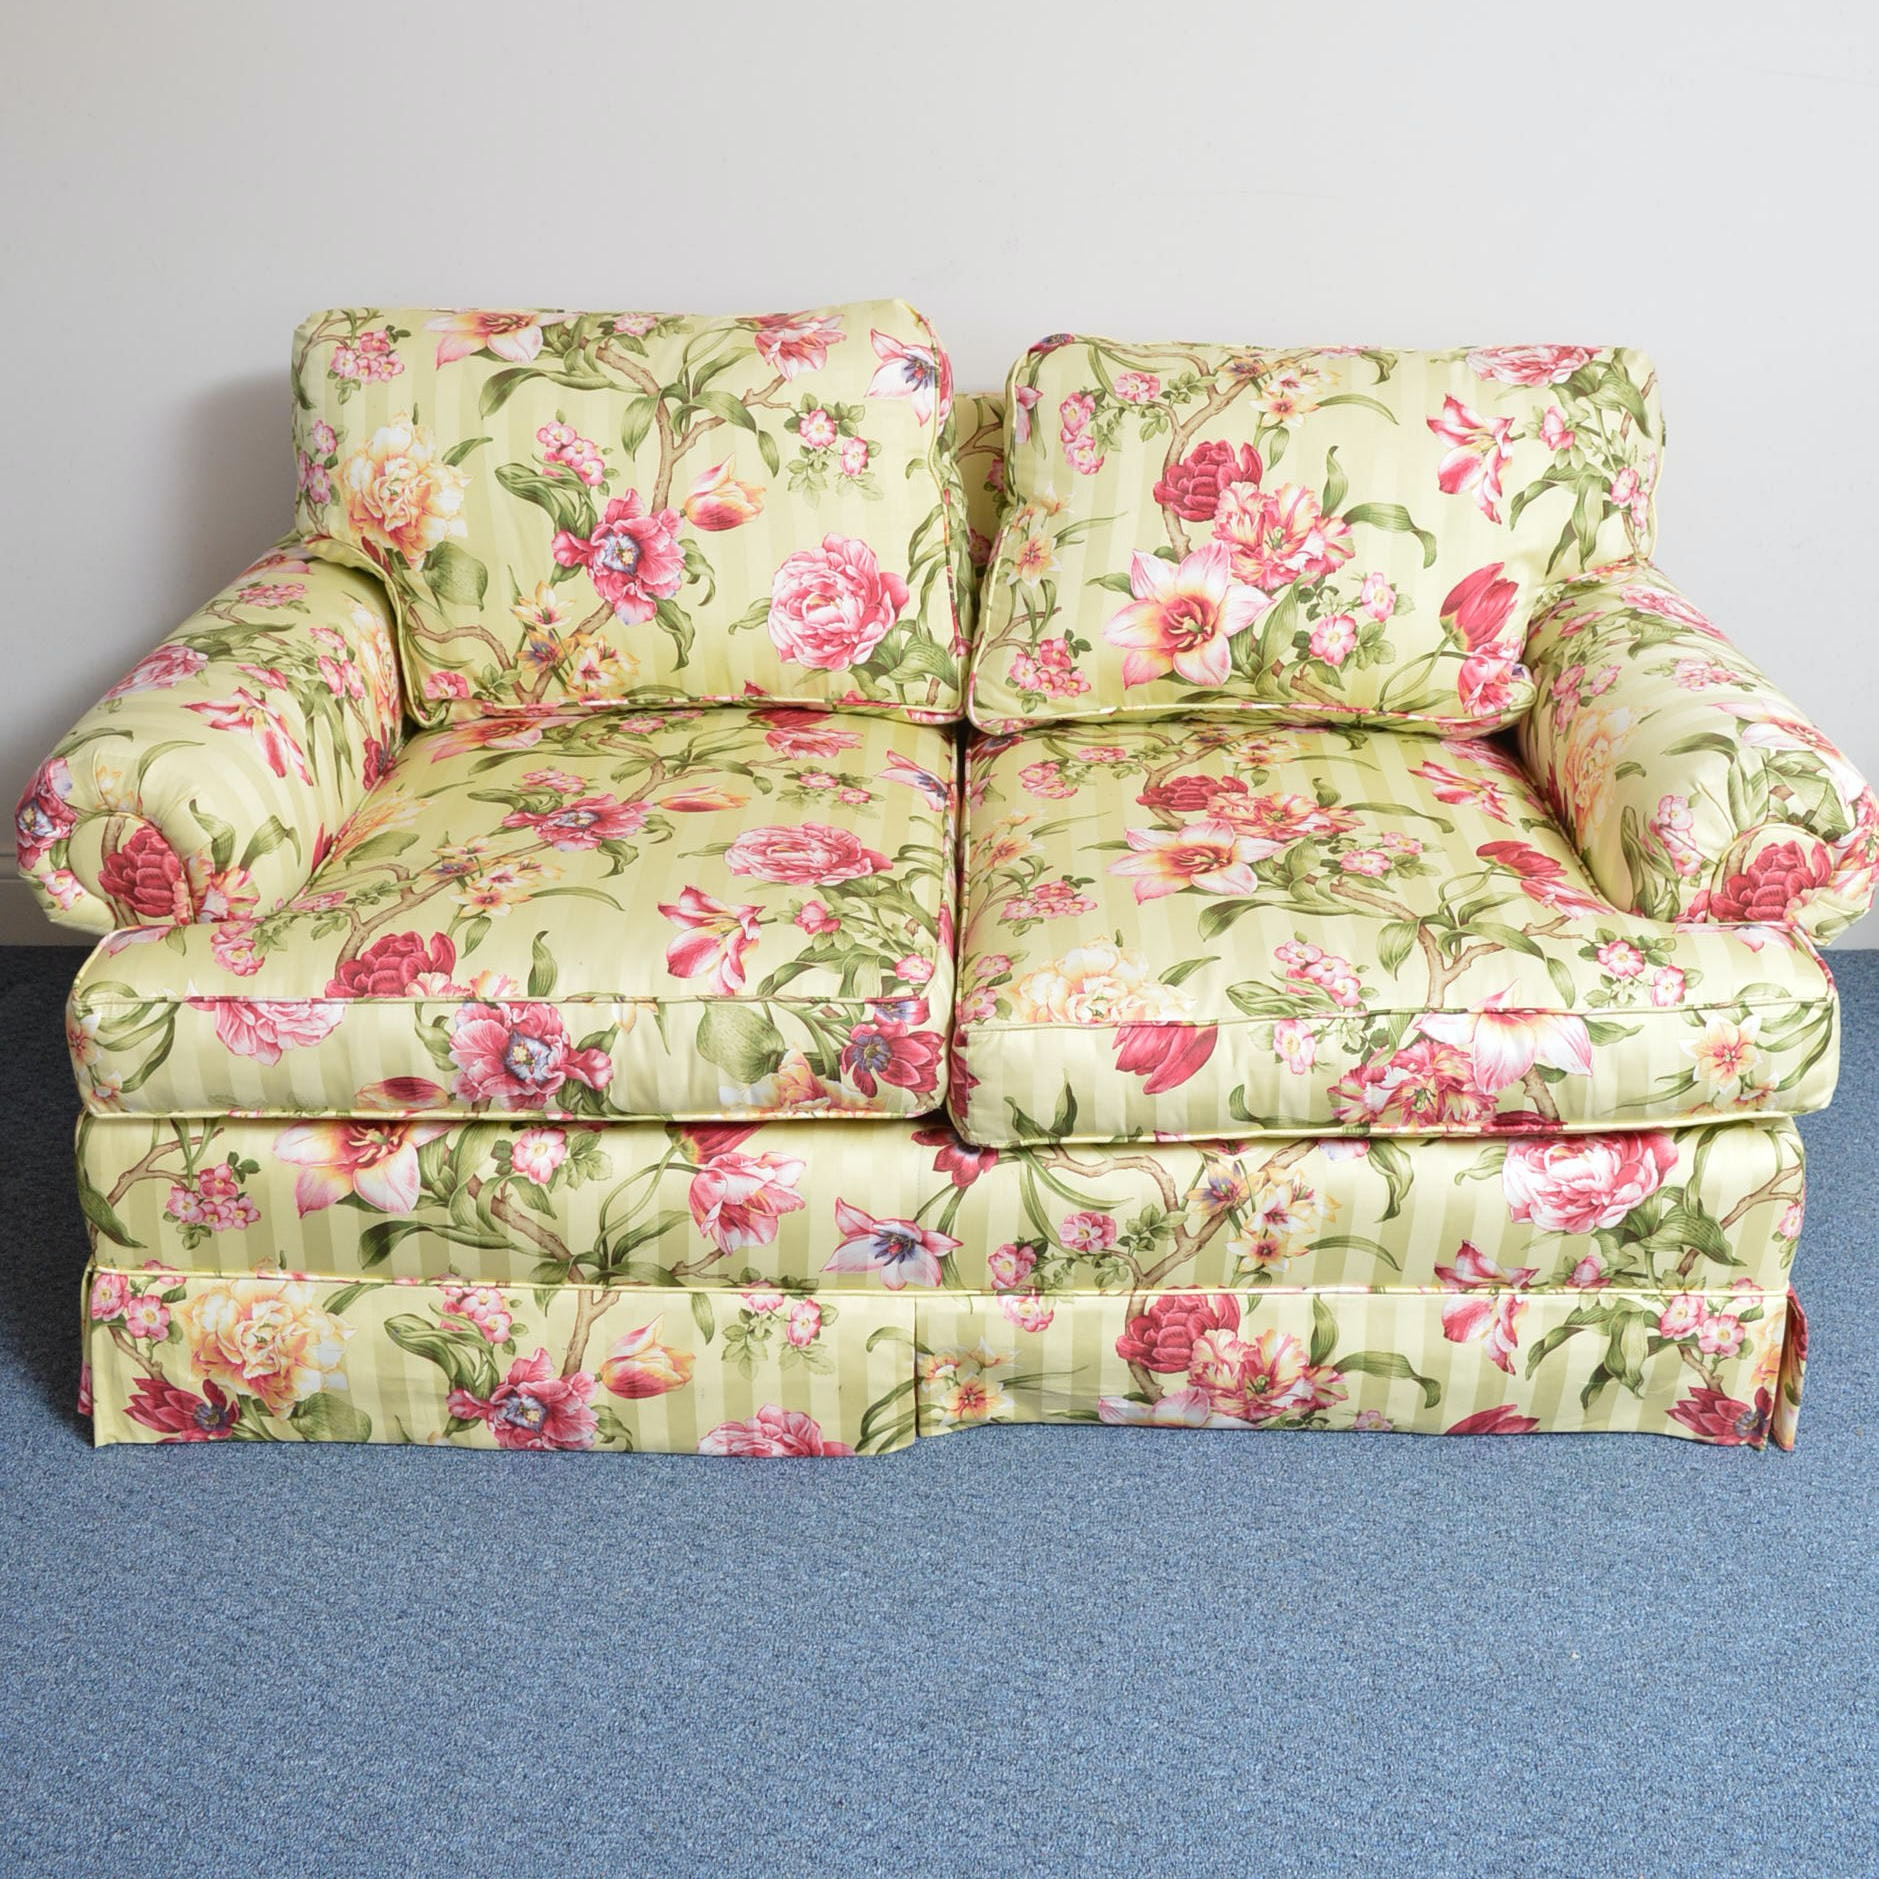 Floral Upholstered Love Seat by William Alan